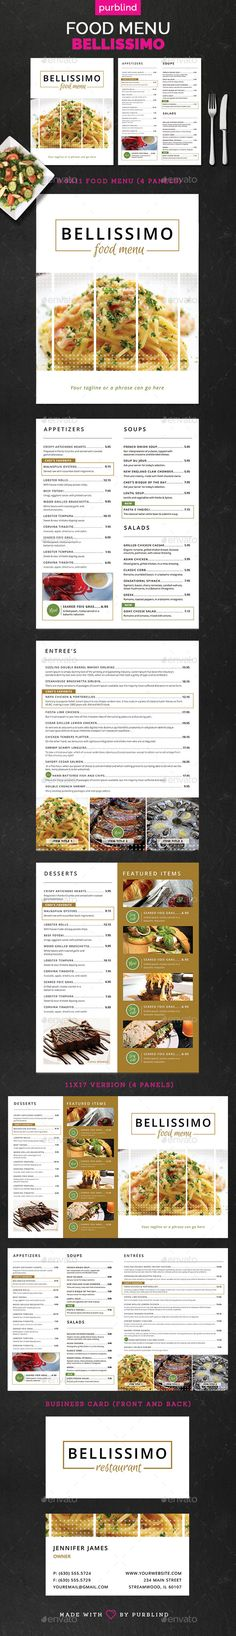 Restaurant Menu Set - Bellissimo Template PSD #design Download: http://graphicriver.net/item/restaurant-menu-set-bellissimo/13276115?ref=ksioks